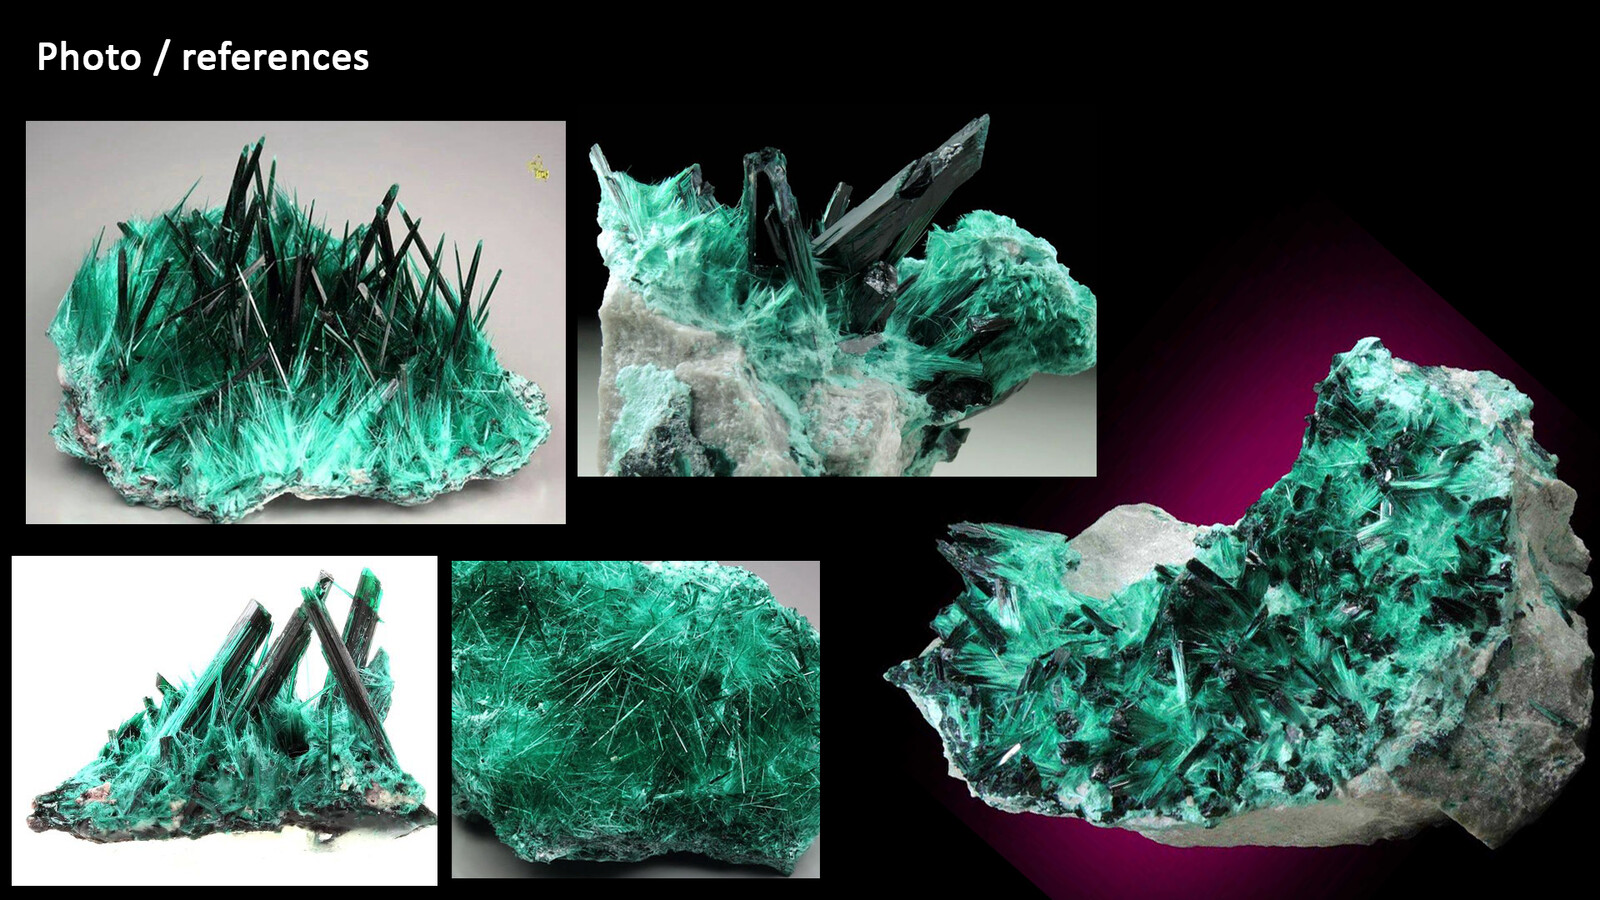 Fibrous Malachite Mineral : Photo References / Was important to identidy the key features of this mineral and develop a procedural setup around them.